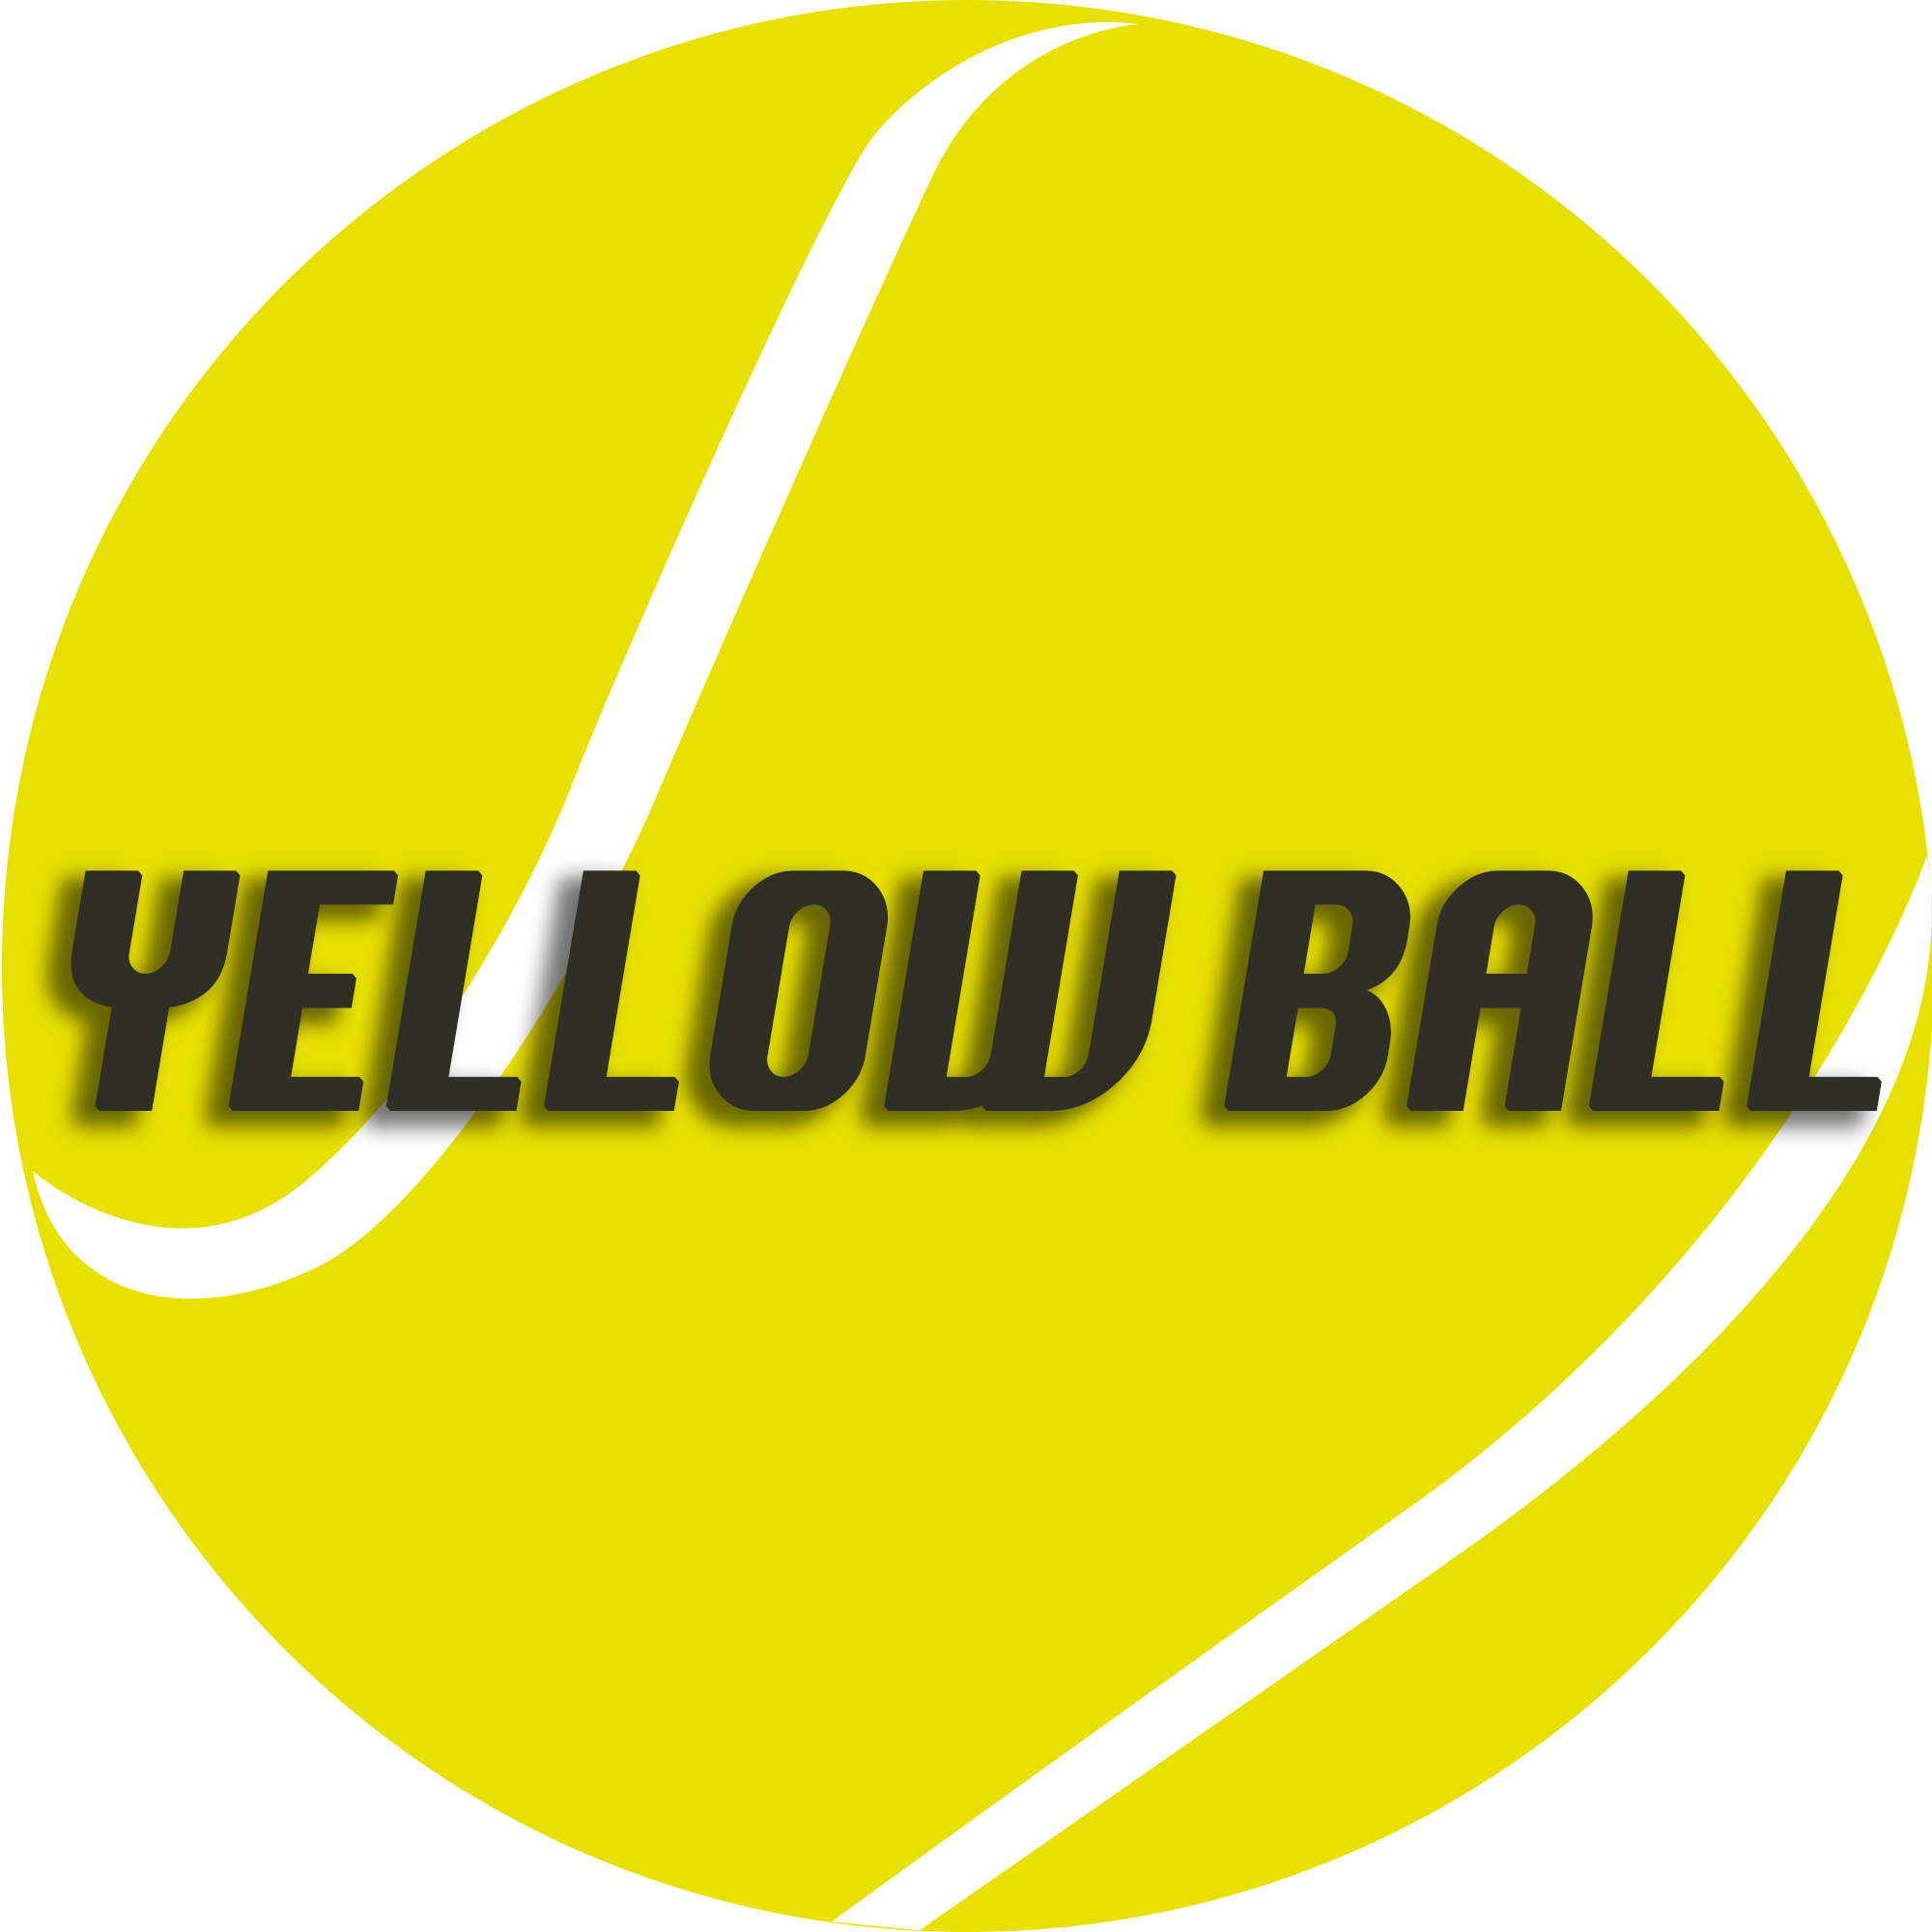 YELLOW_BALL_1